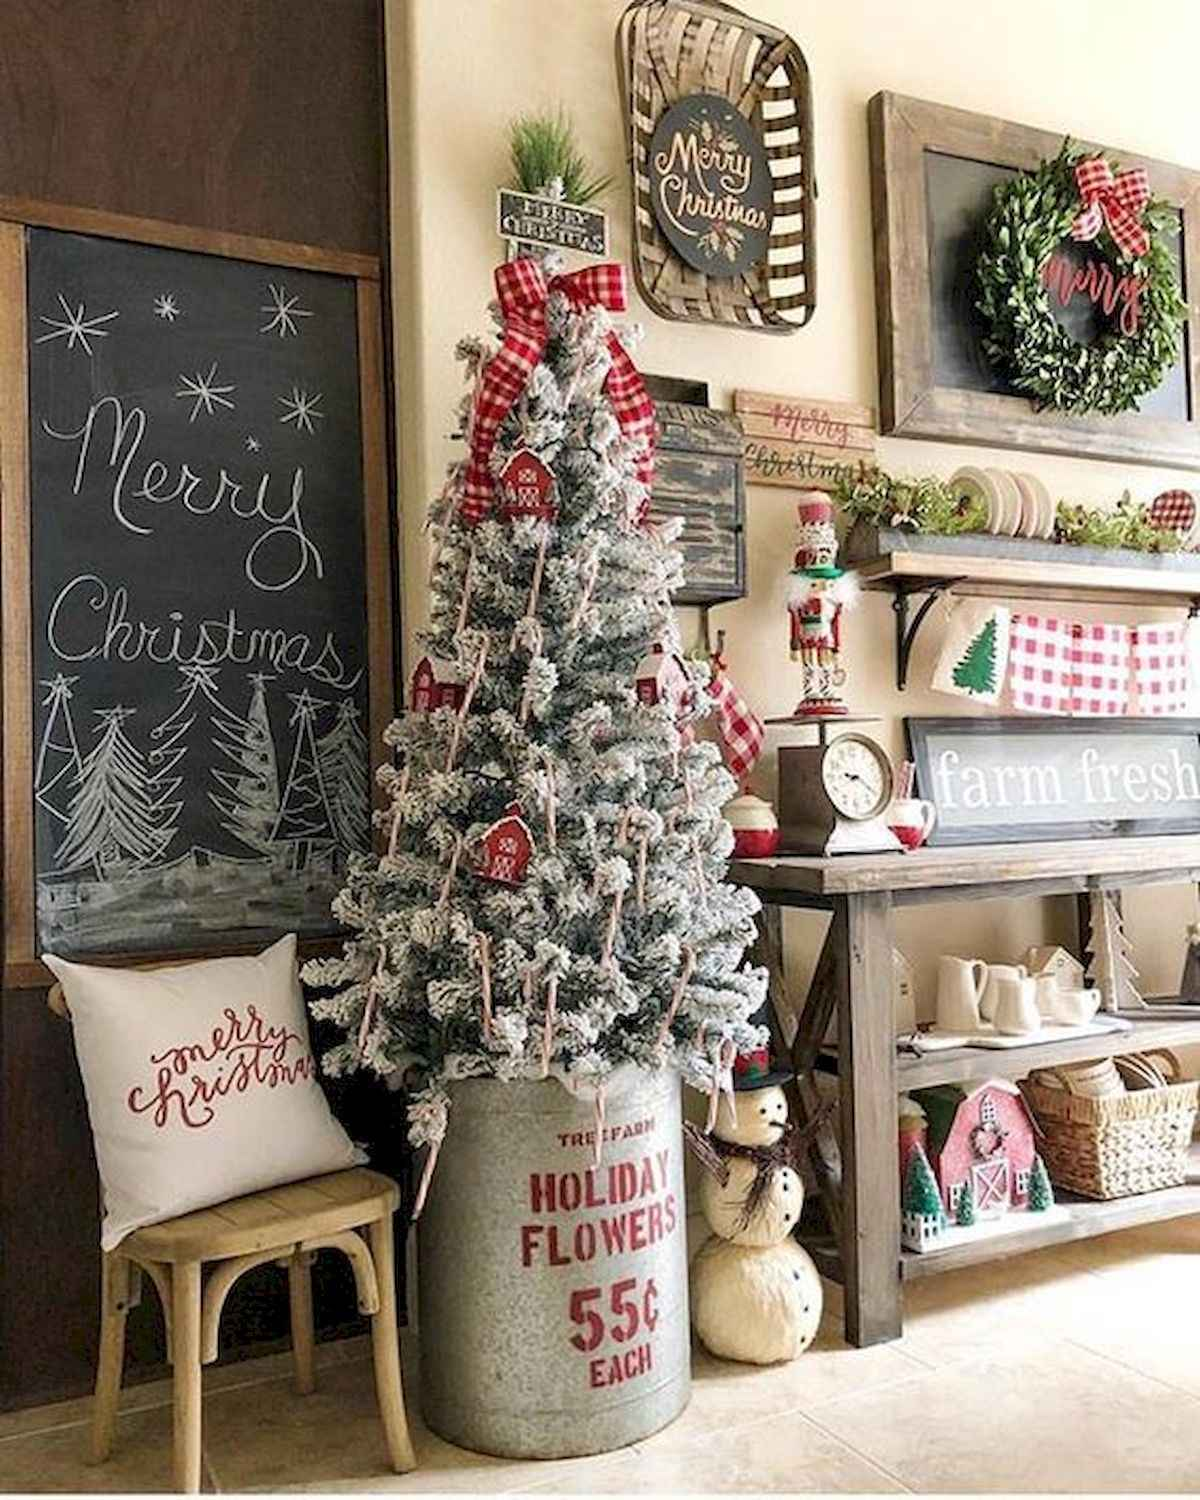 30 rustic and vintage christmas tree ideas decorations (27)